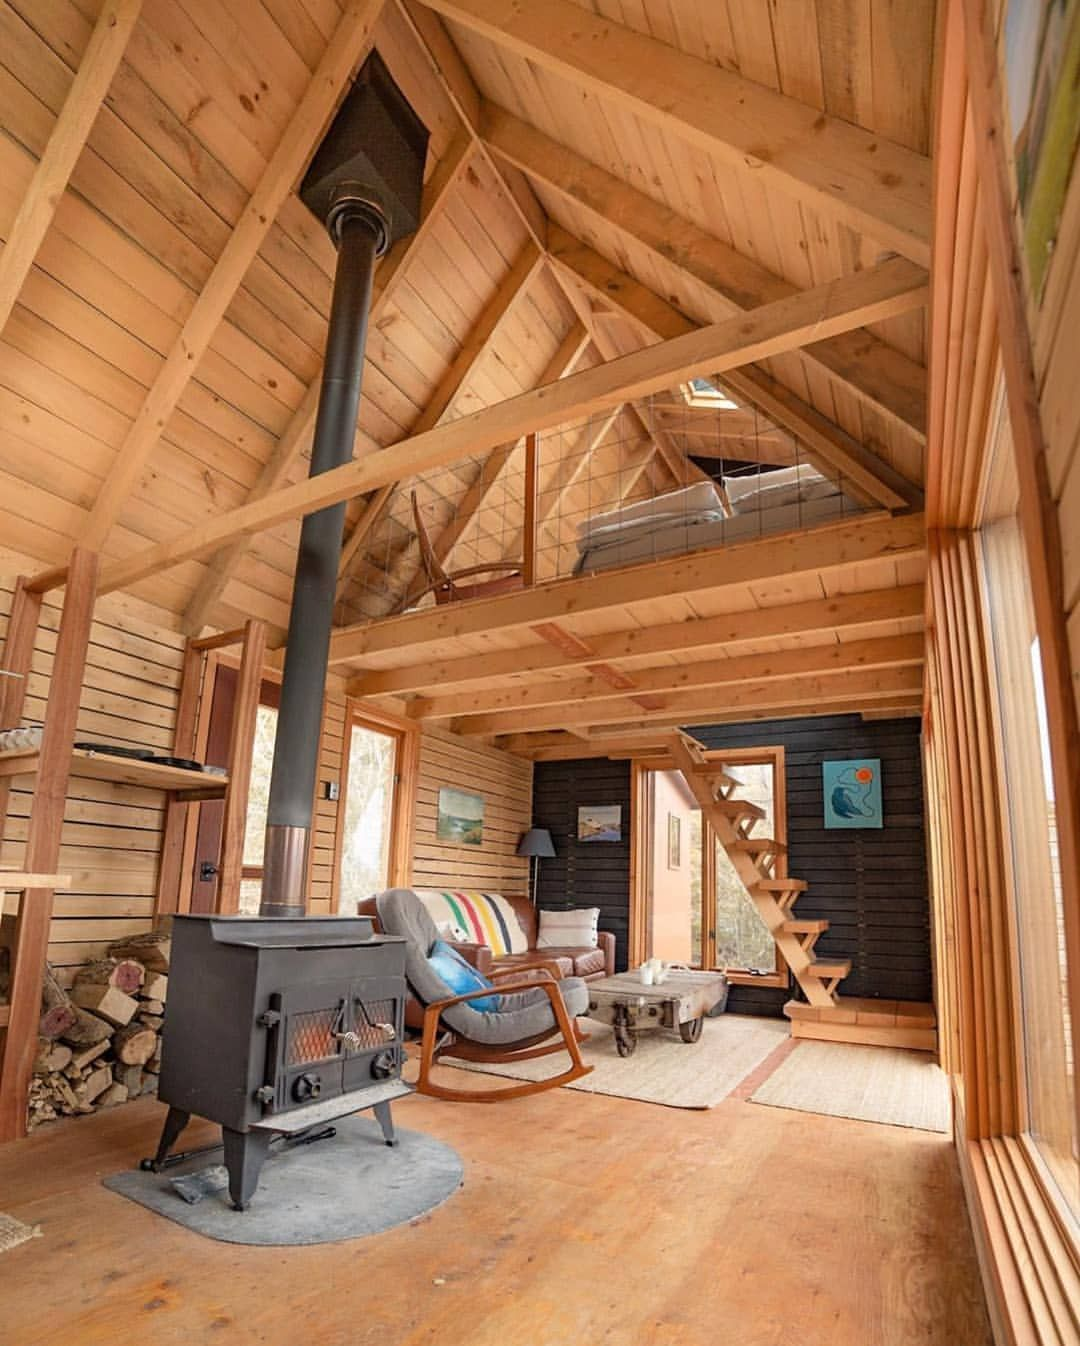 Loft Y Goals Ontario Dirtandglass Ravenhouse Getawaycabin Thecabinchronicles Tiny House Cabin Tiny House Remodel Tiny House Interior